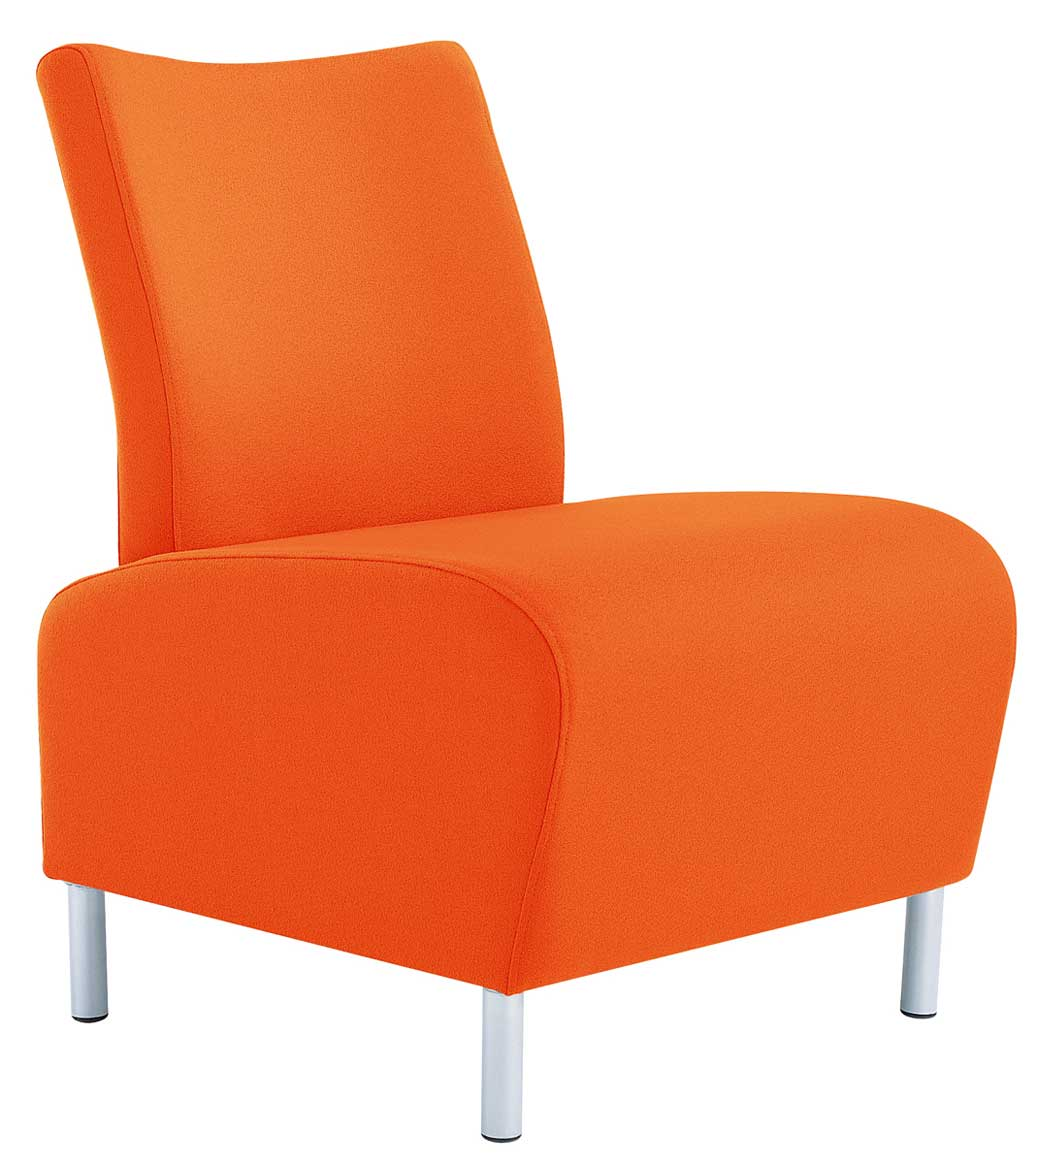 Liam shea cad chairs for Contemporary furniture chairs